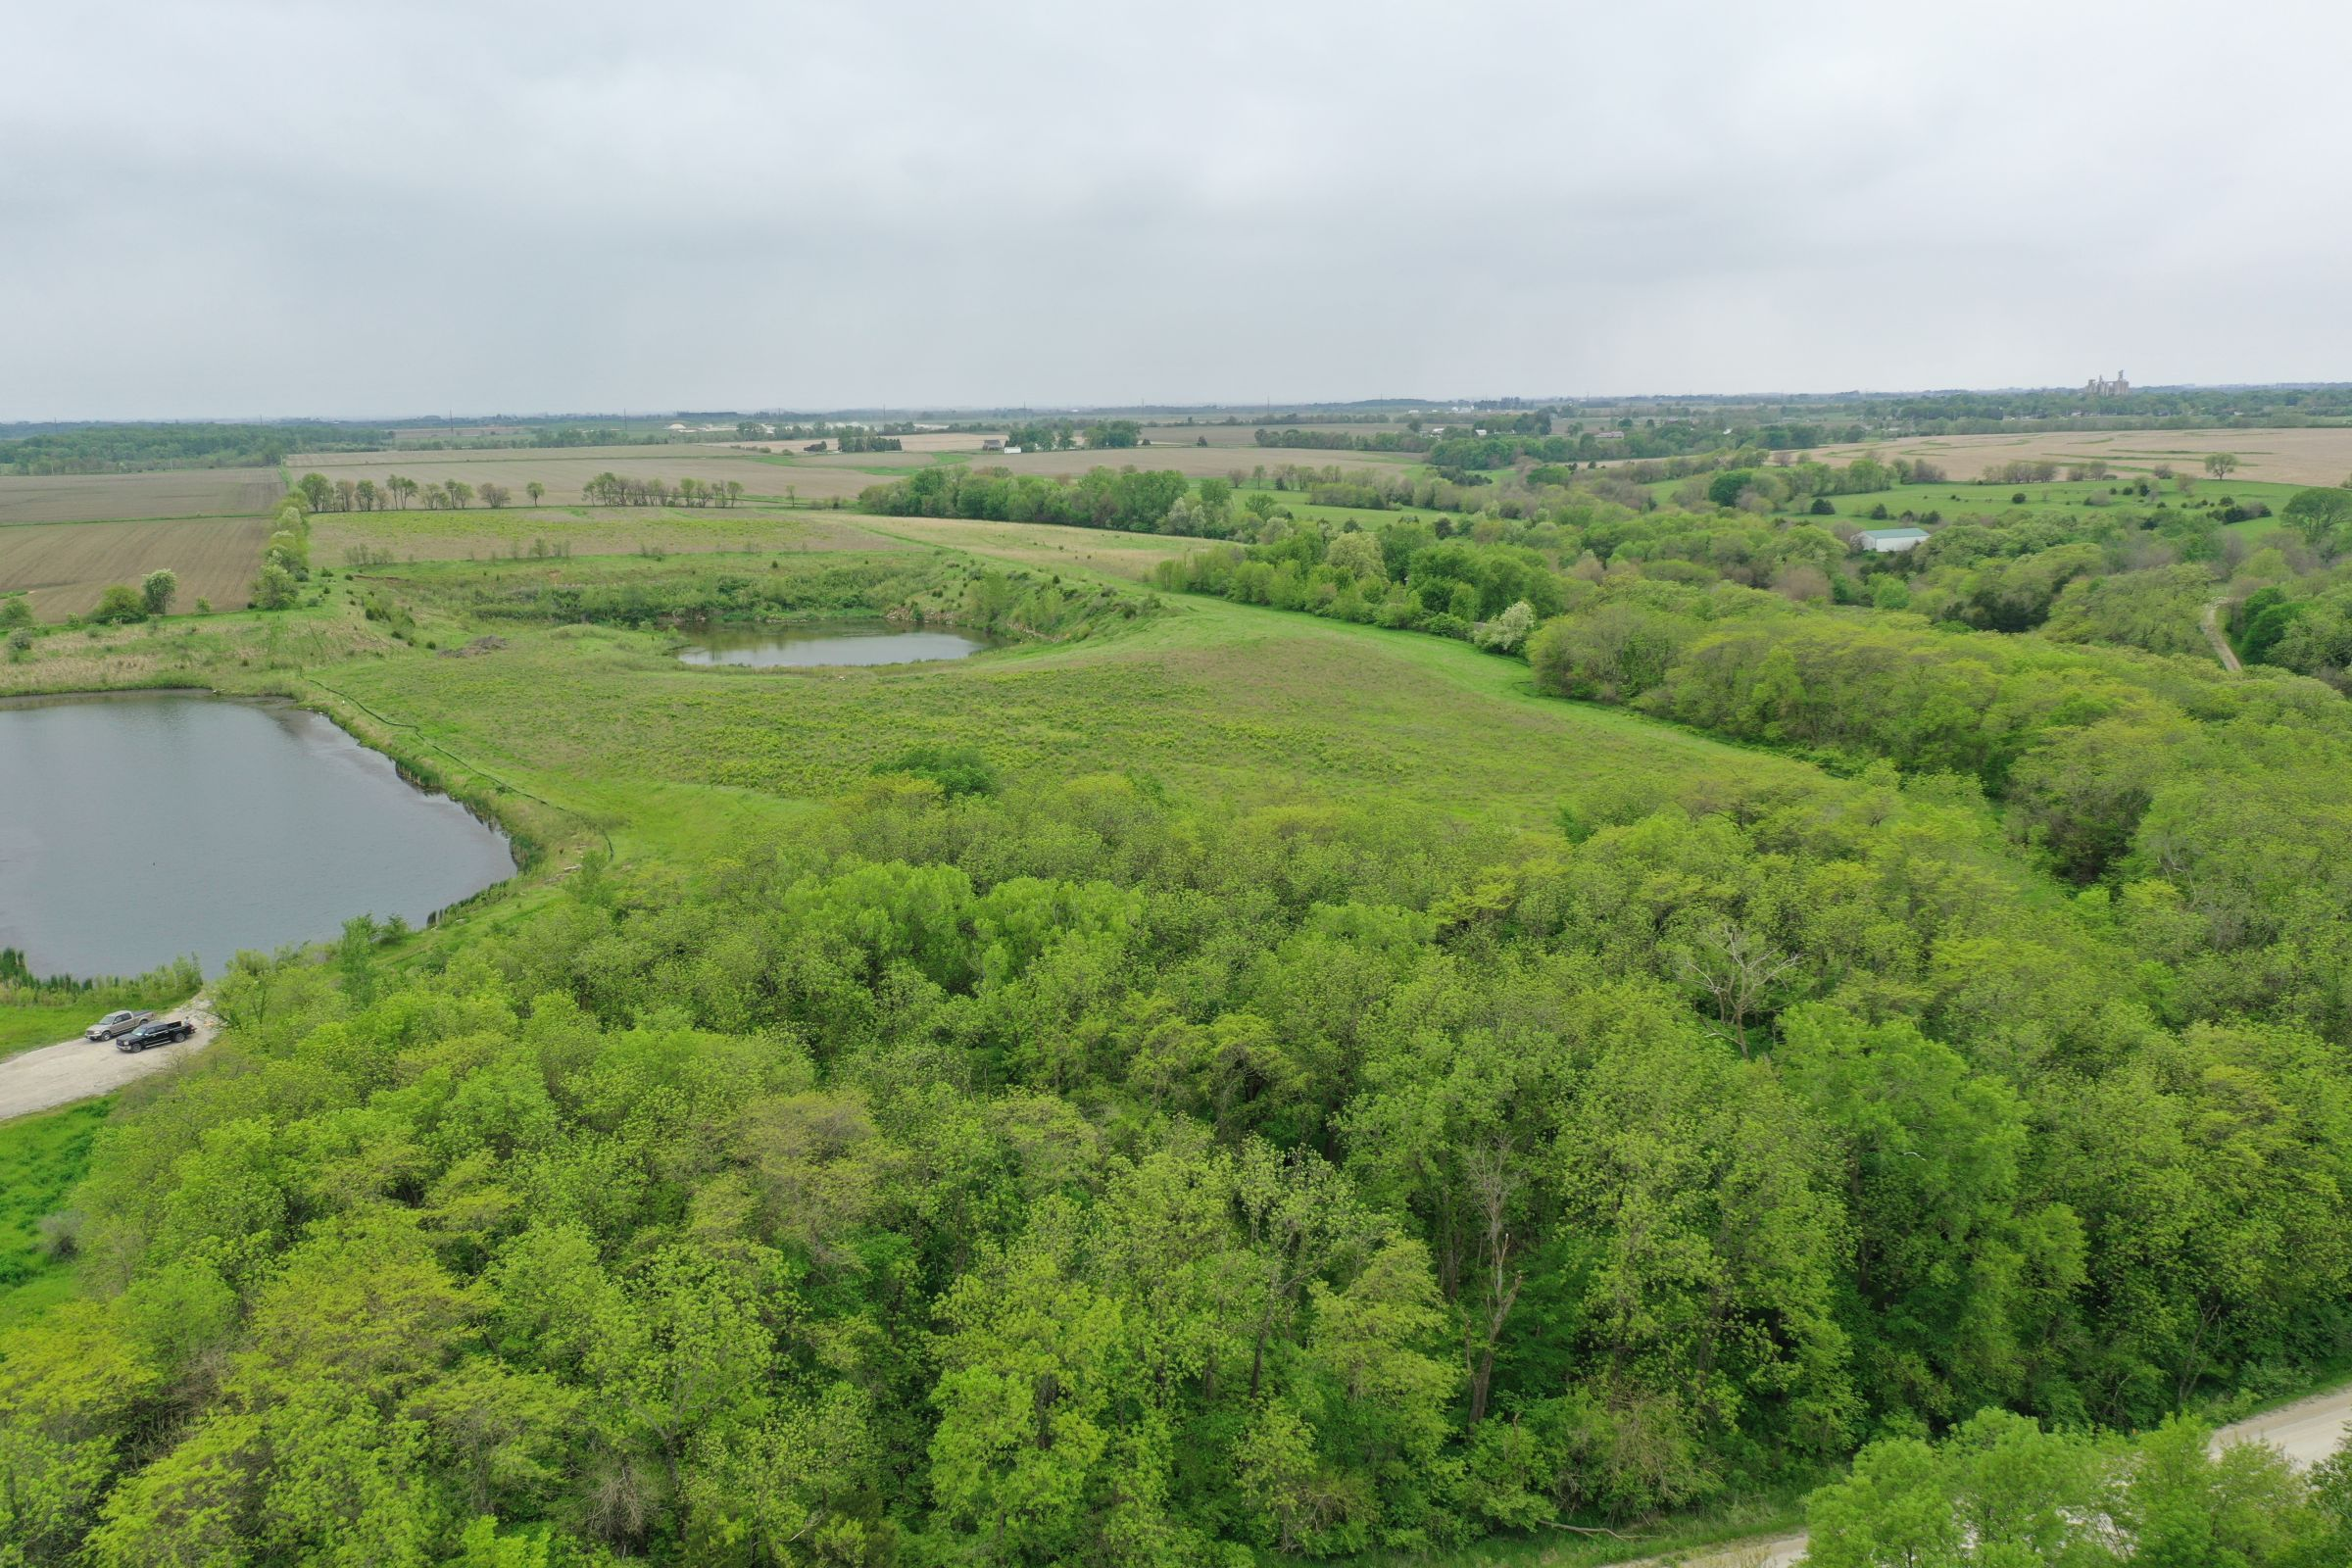 land-dallas-county-iowa-51-acres-listing-number-14894-4-2020-05-27-153511.JPG